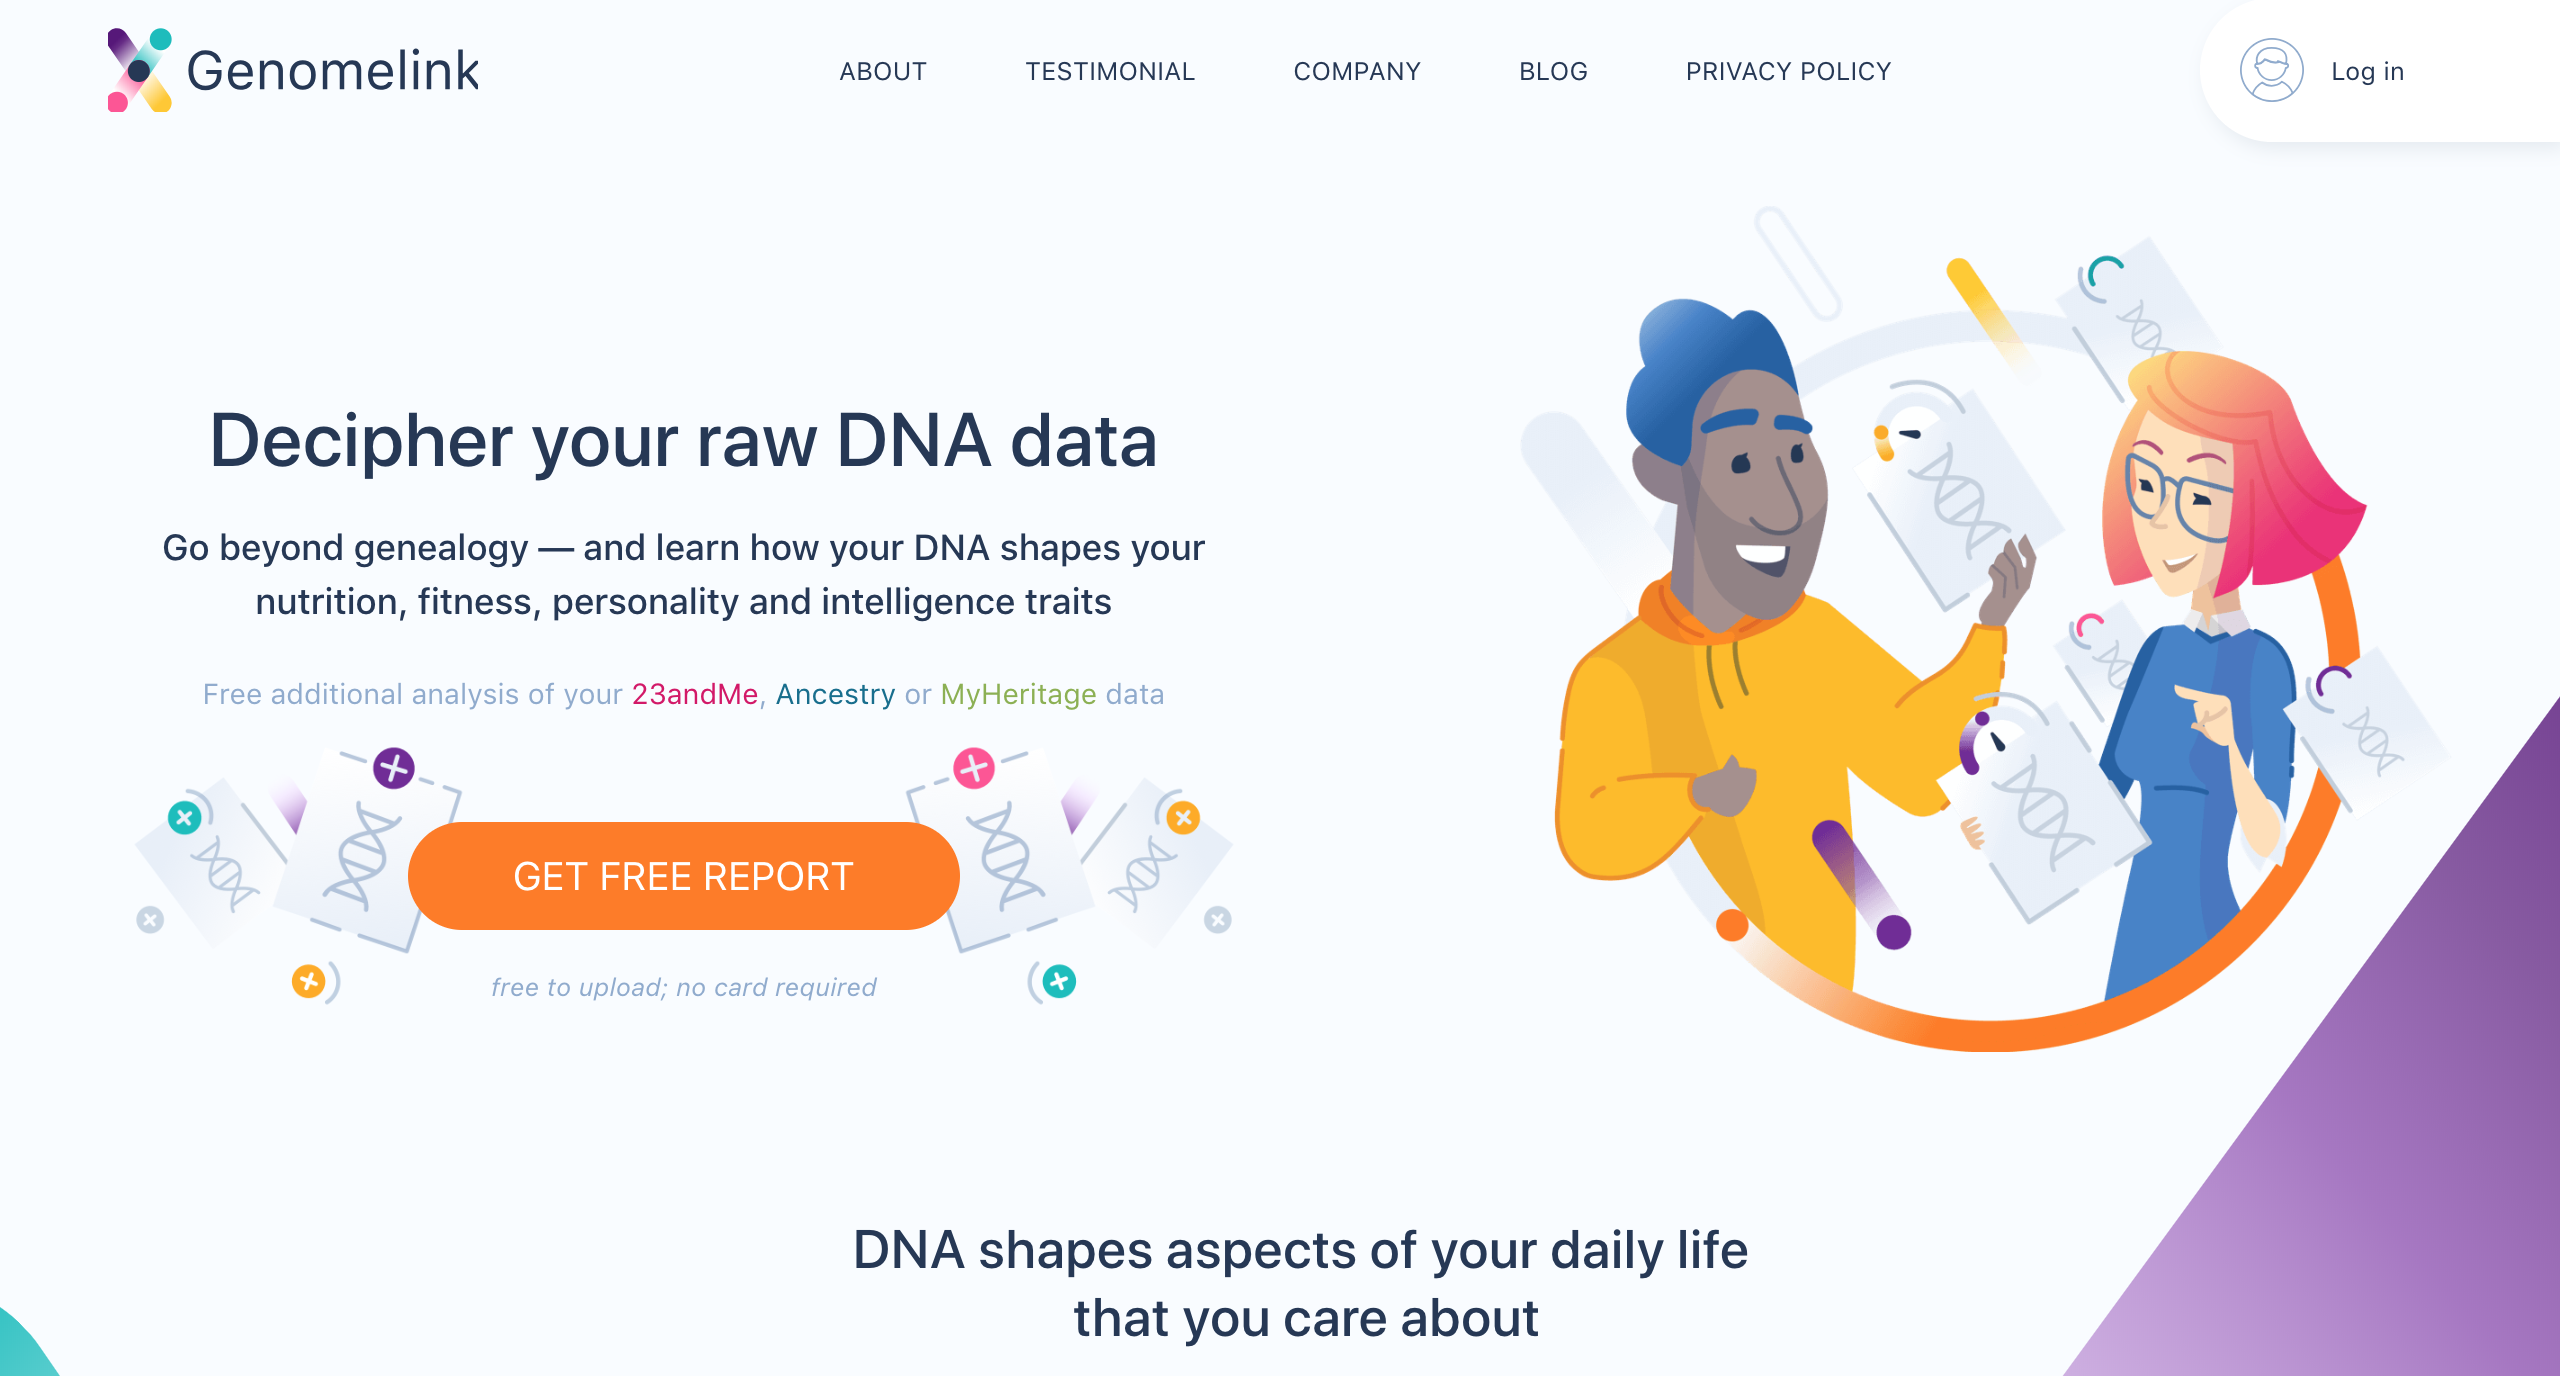 Let your DNA link with the latest genomics science and unlock 125+ traits that make you... you! — Genomelink is here to help